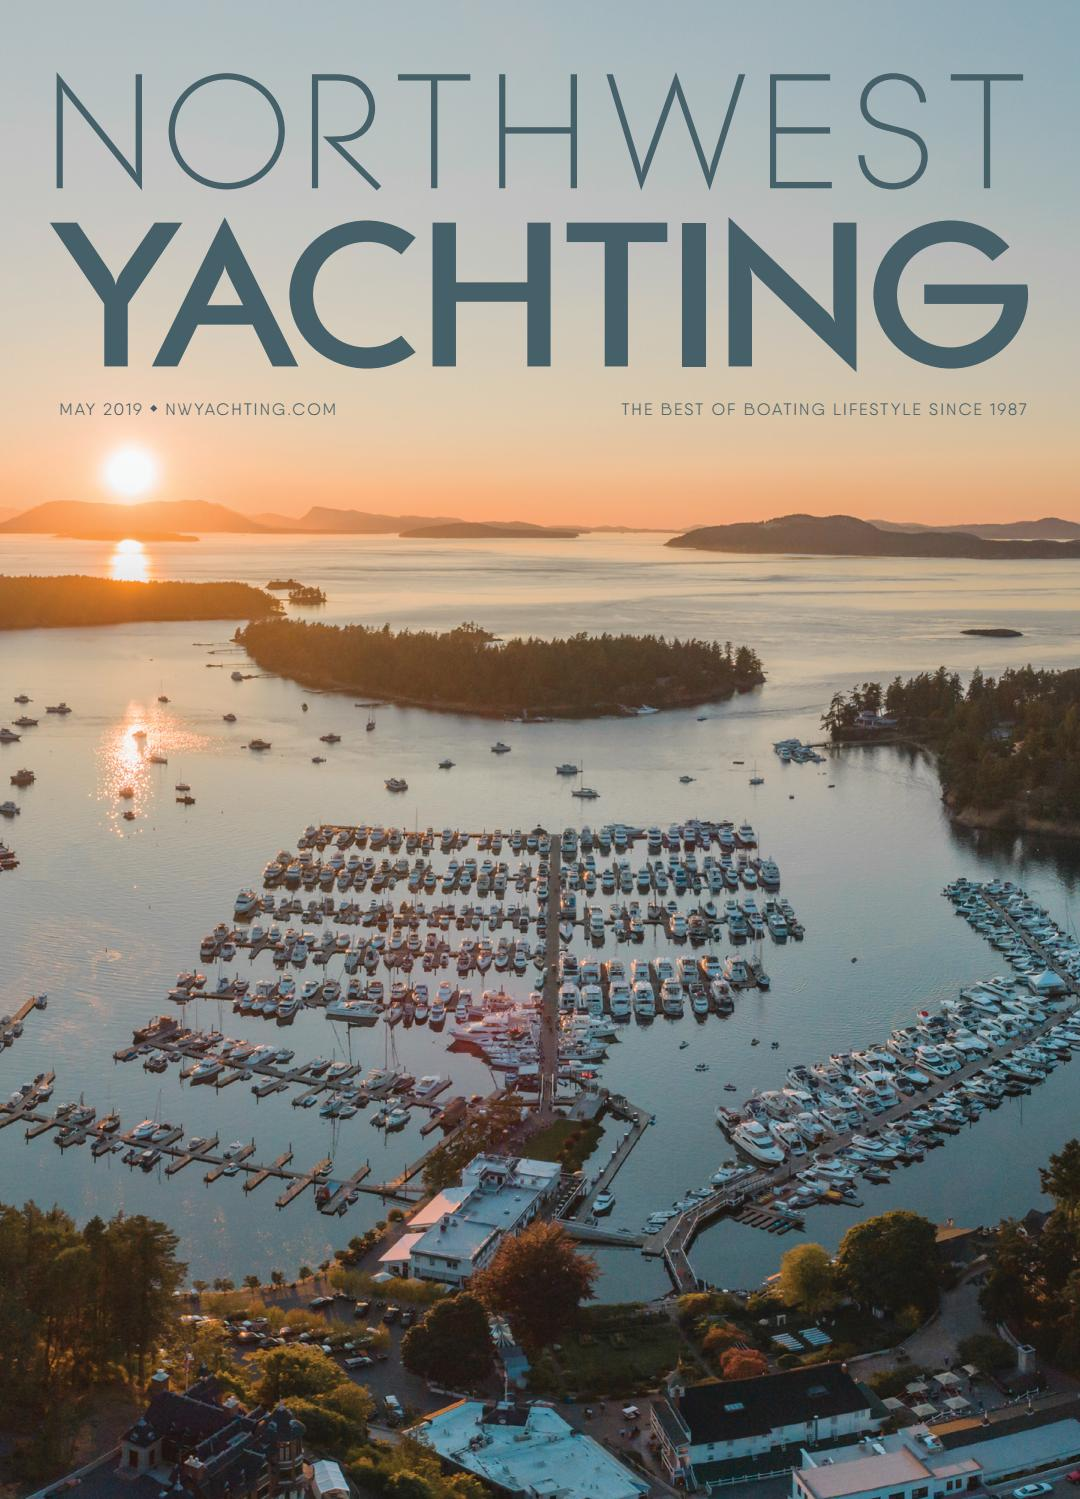 Northwest Yachting May 2019 by Northwest Yachting - issuu